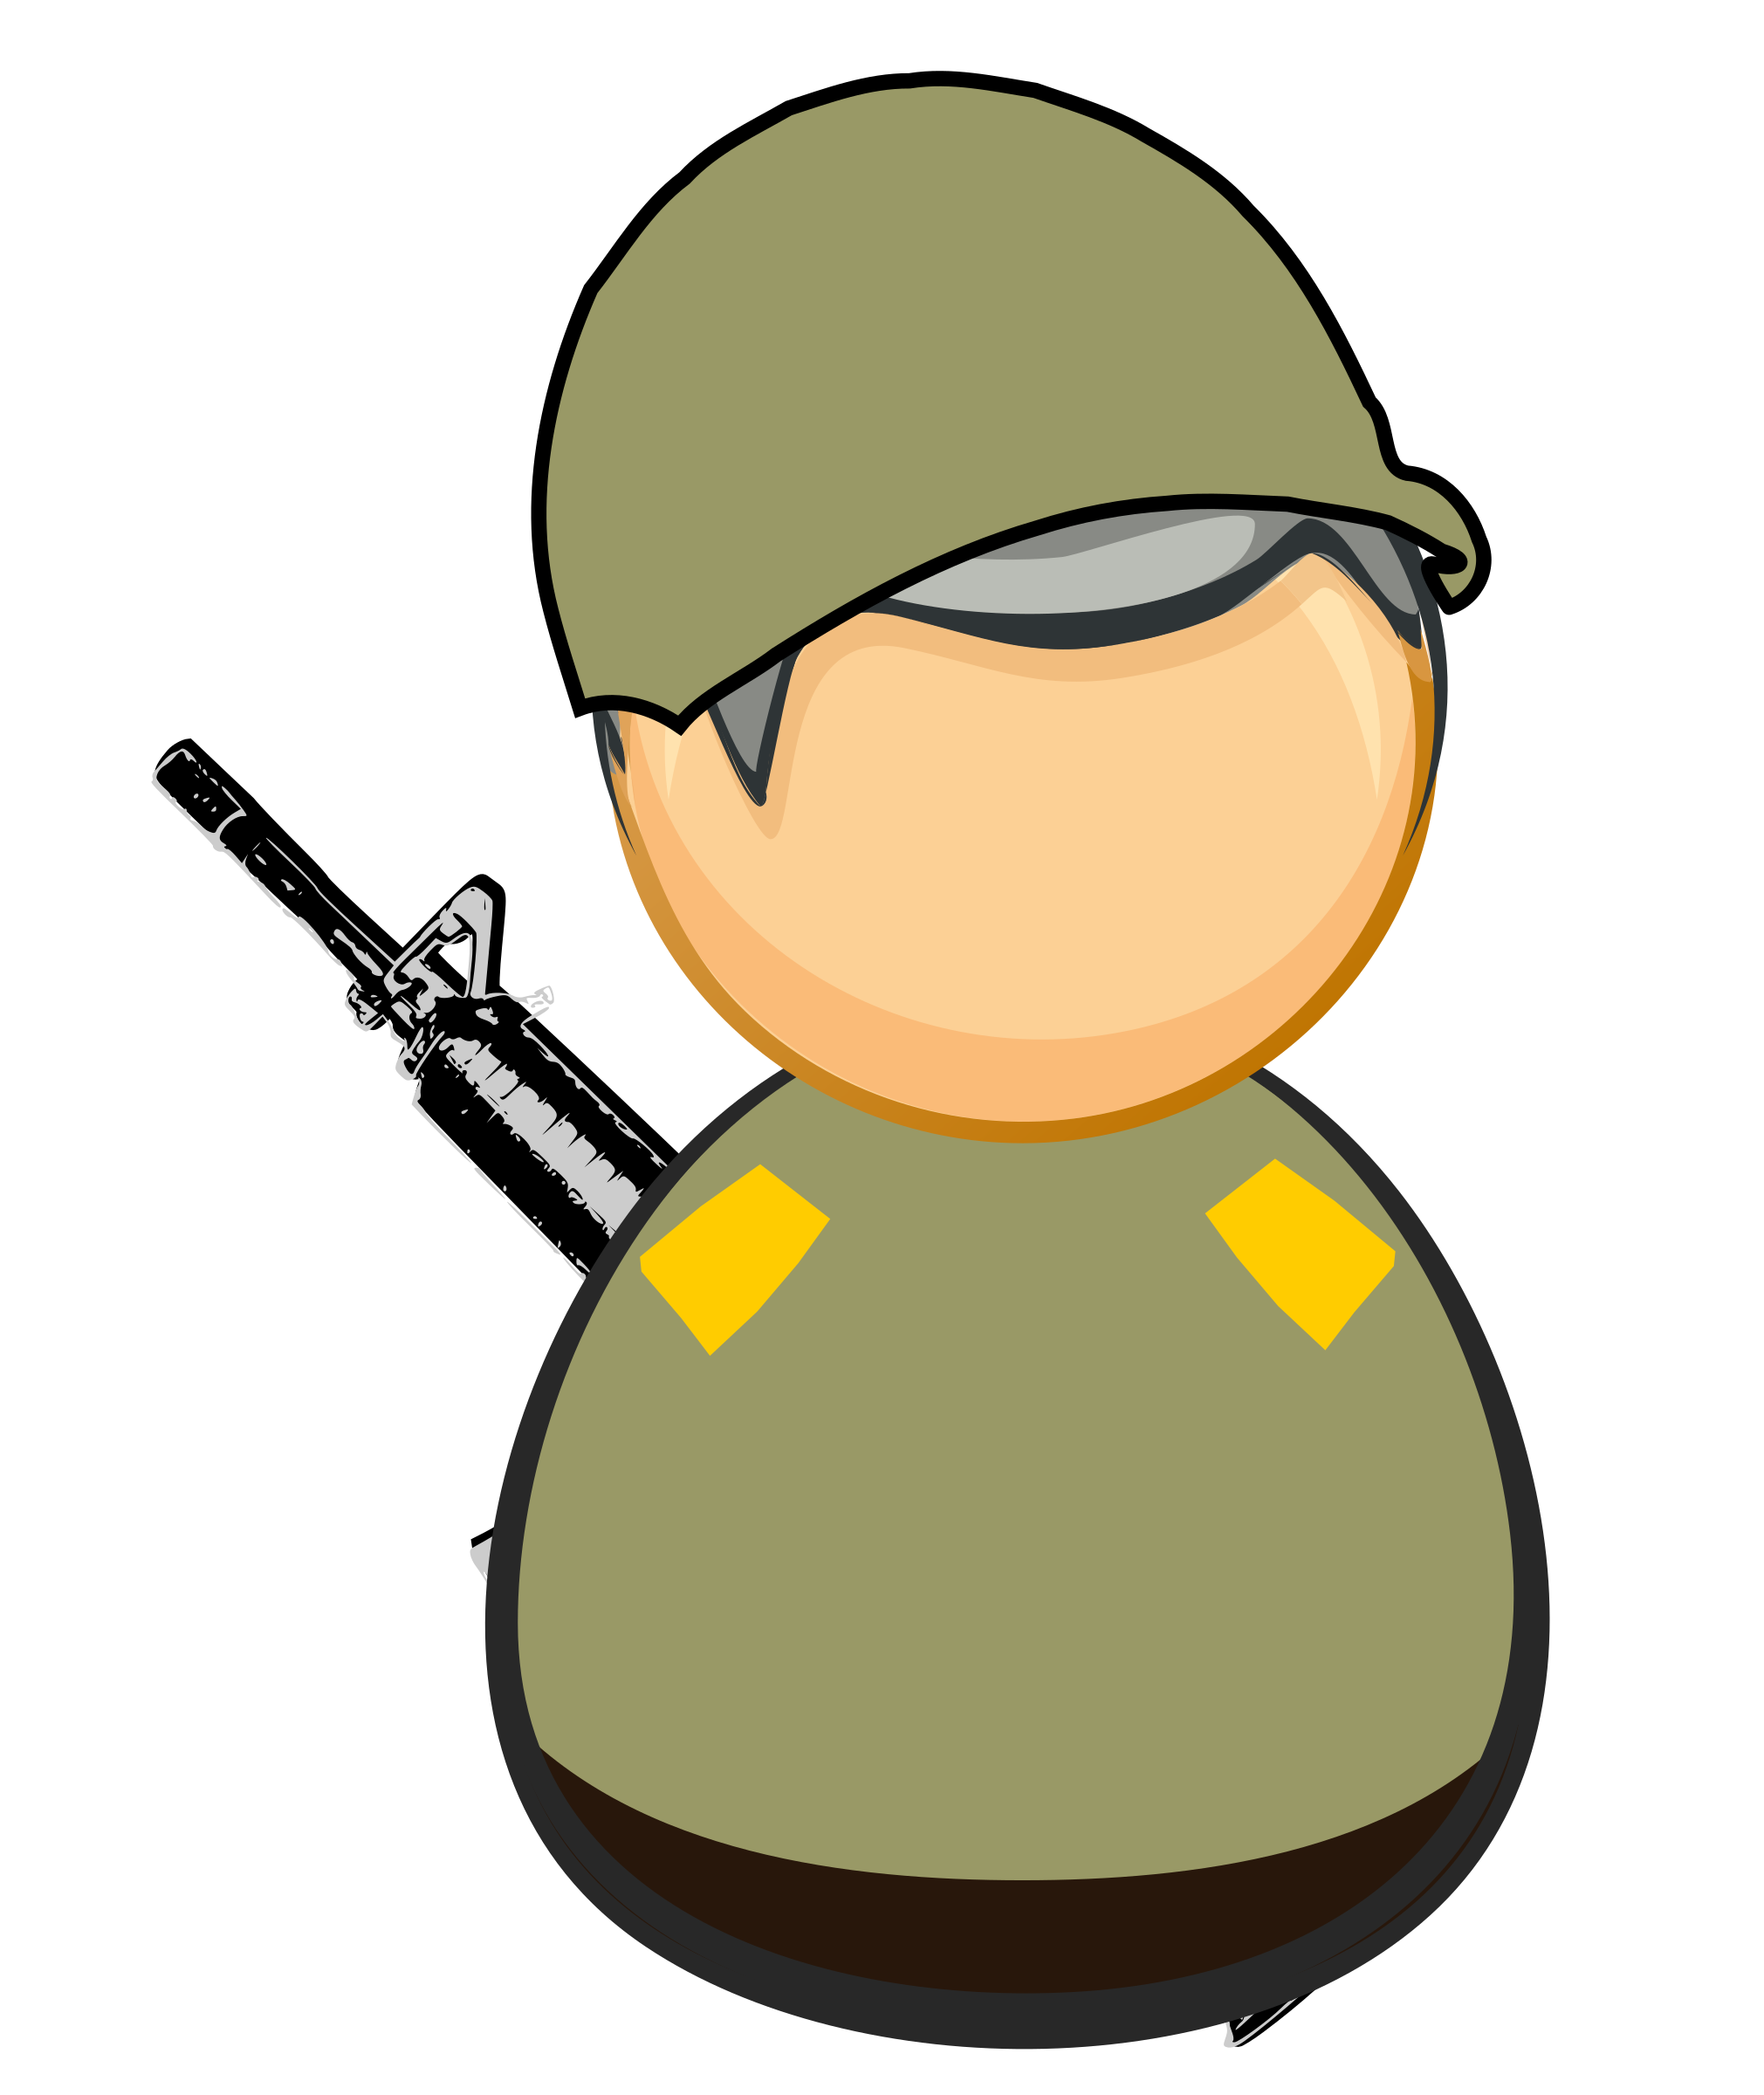 clipart freeuse Transparent free on dumielauxepices. Army clipart clip art.